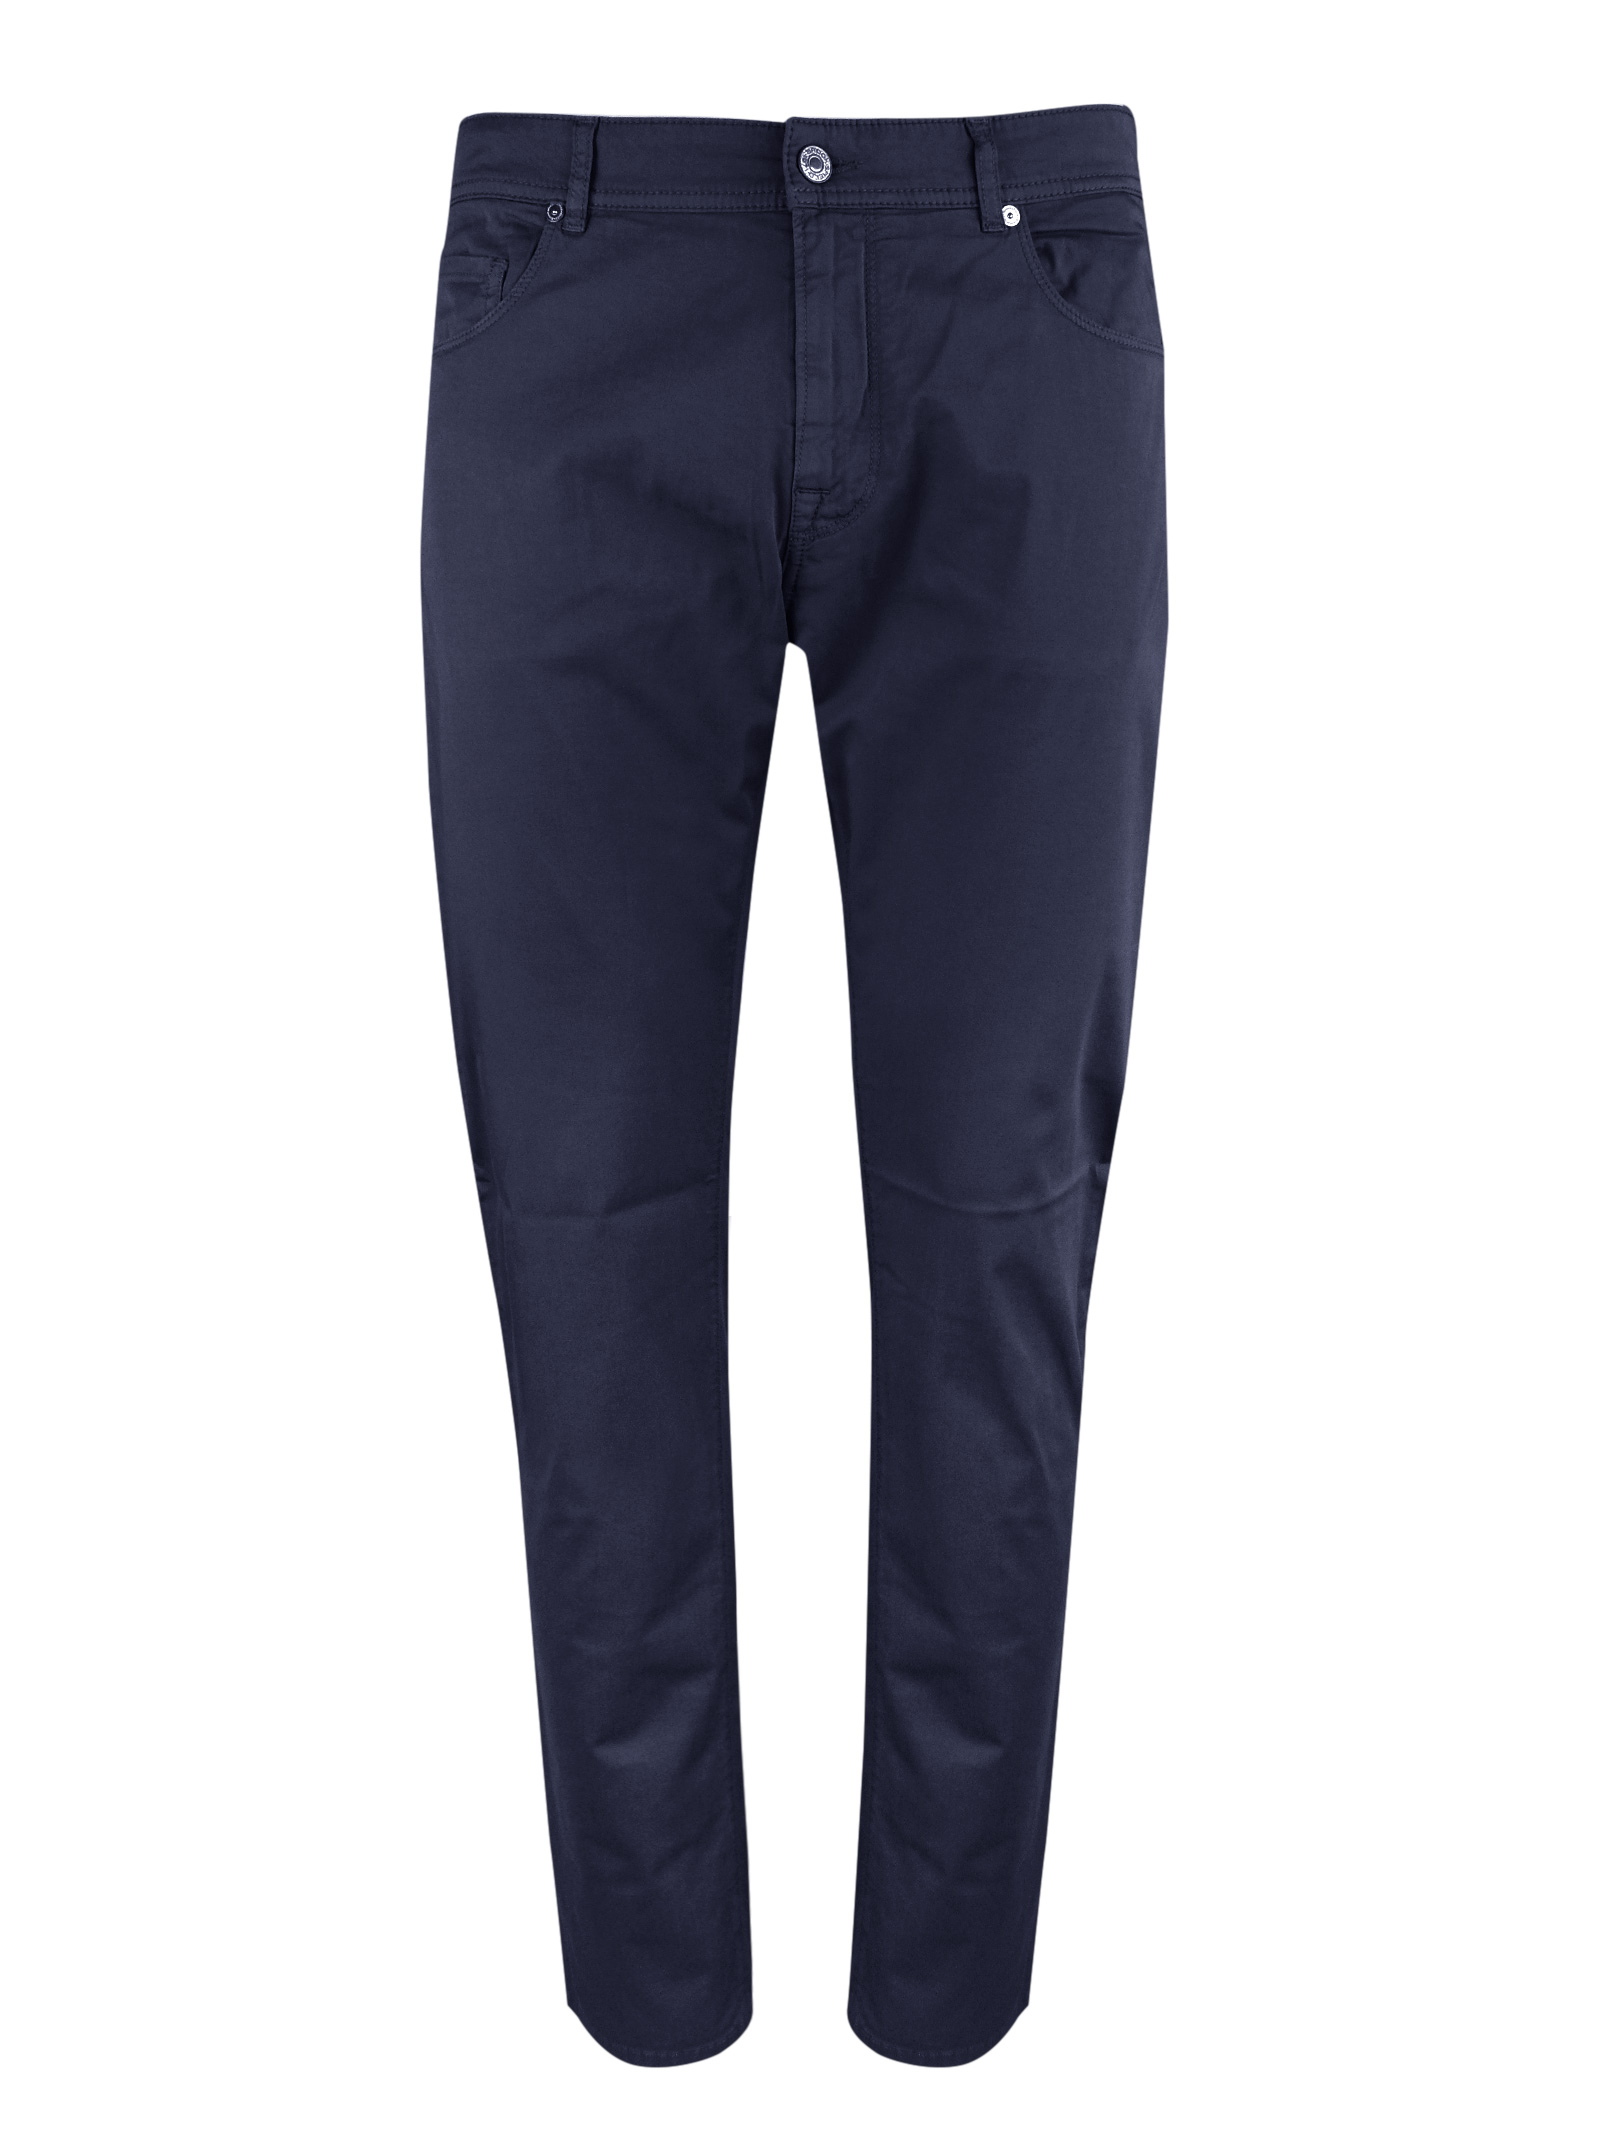 BROOKSFIELD | Trousers | 205D.C0689608